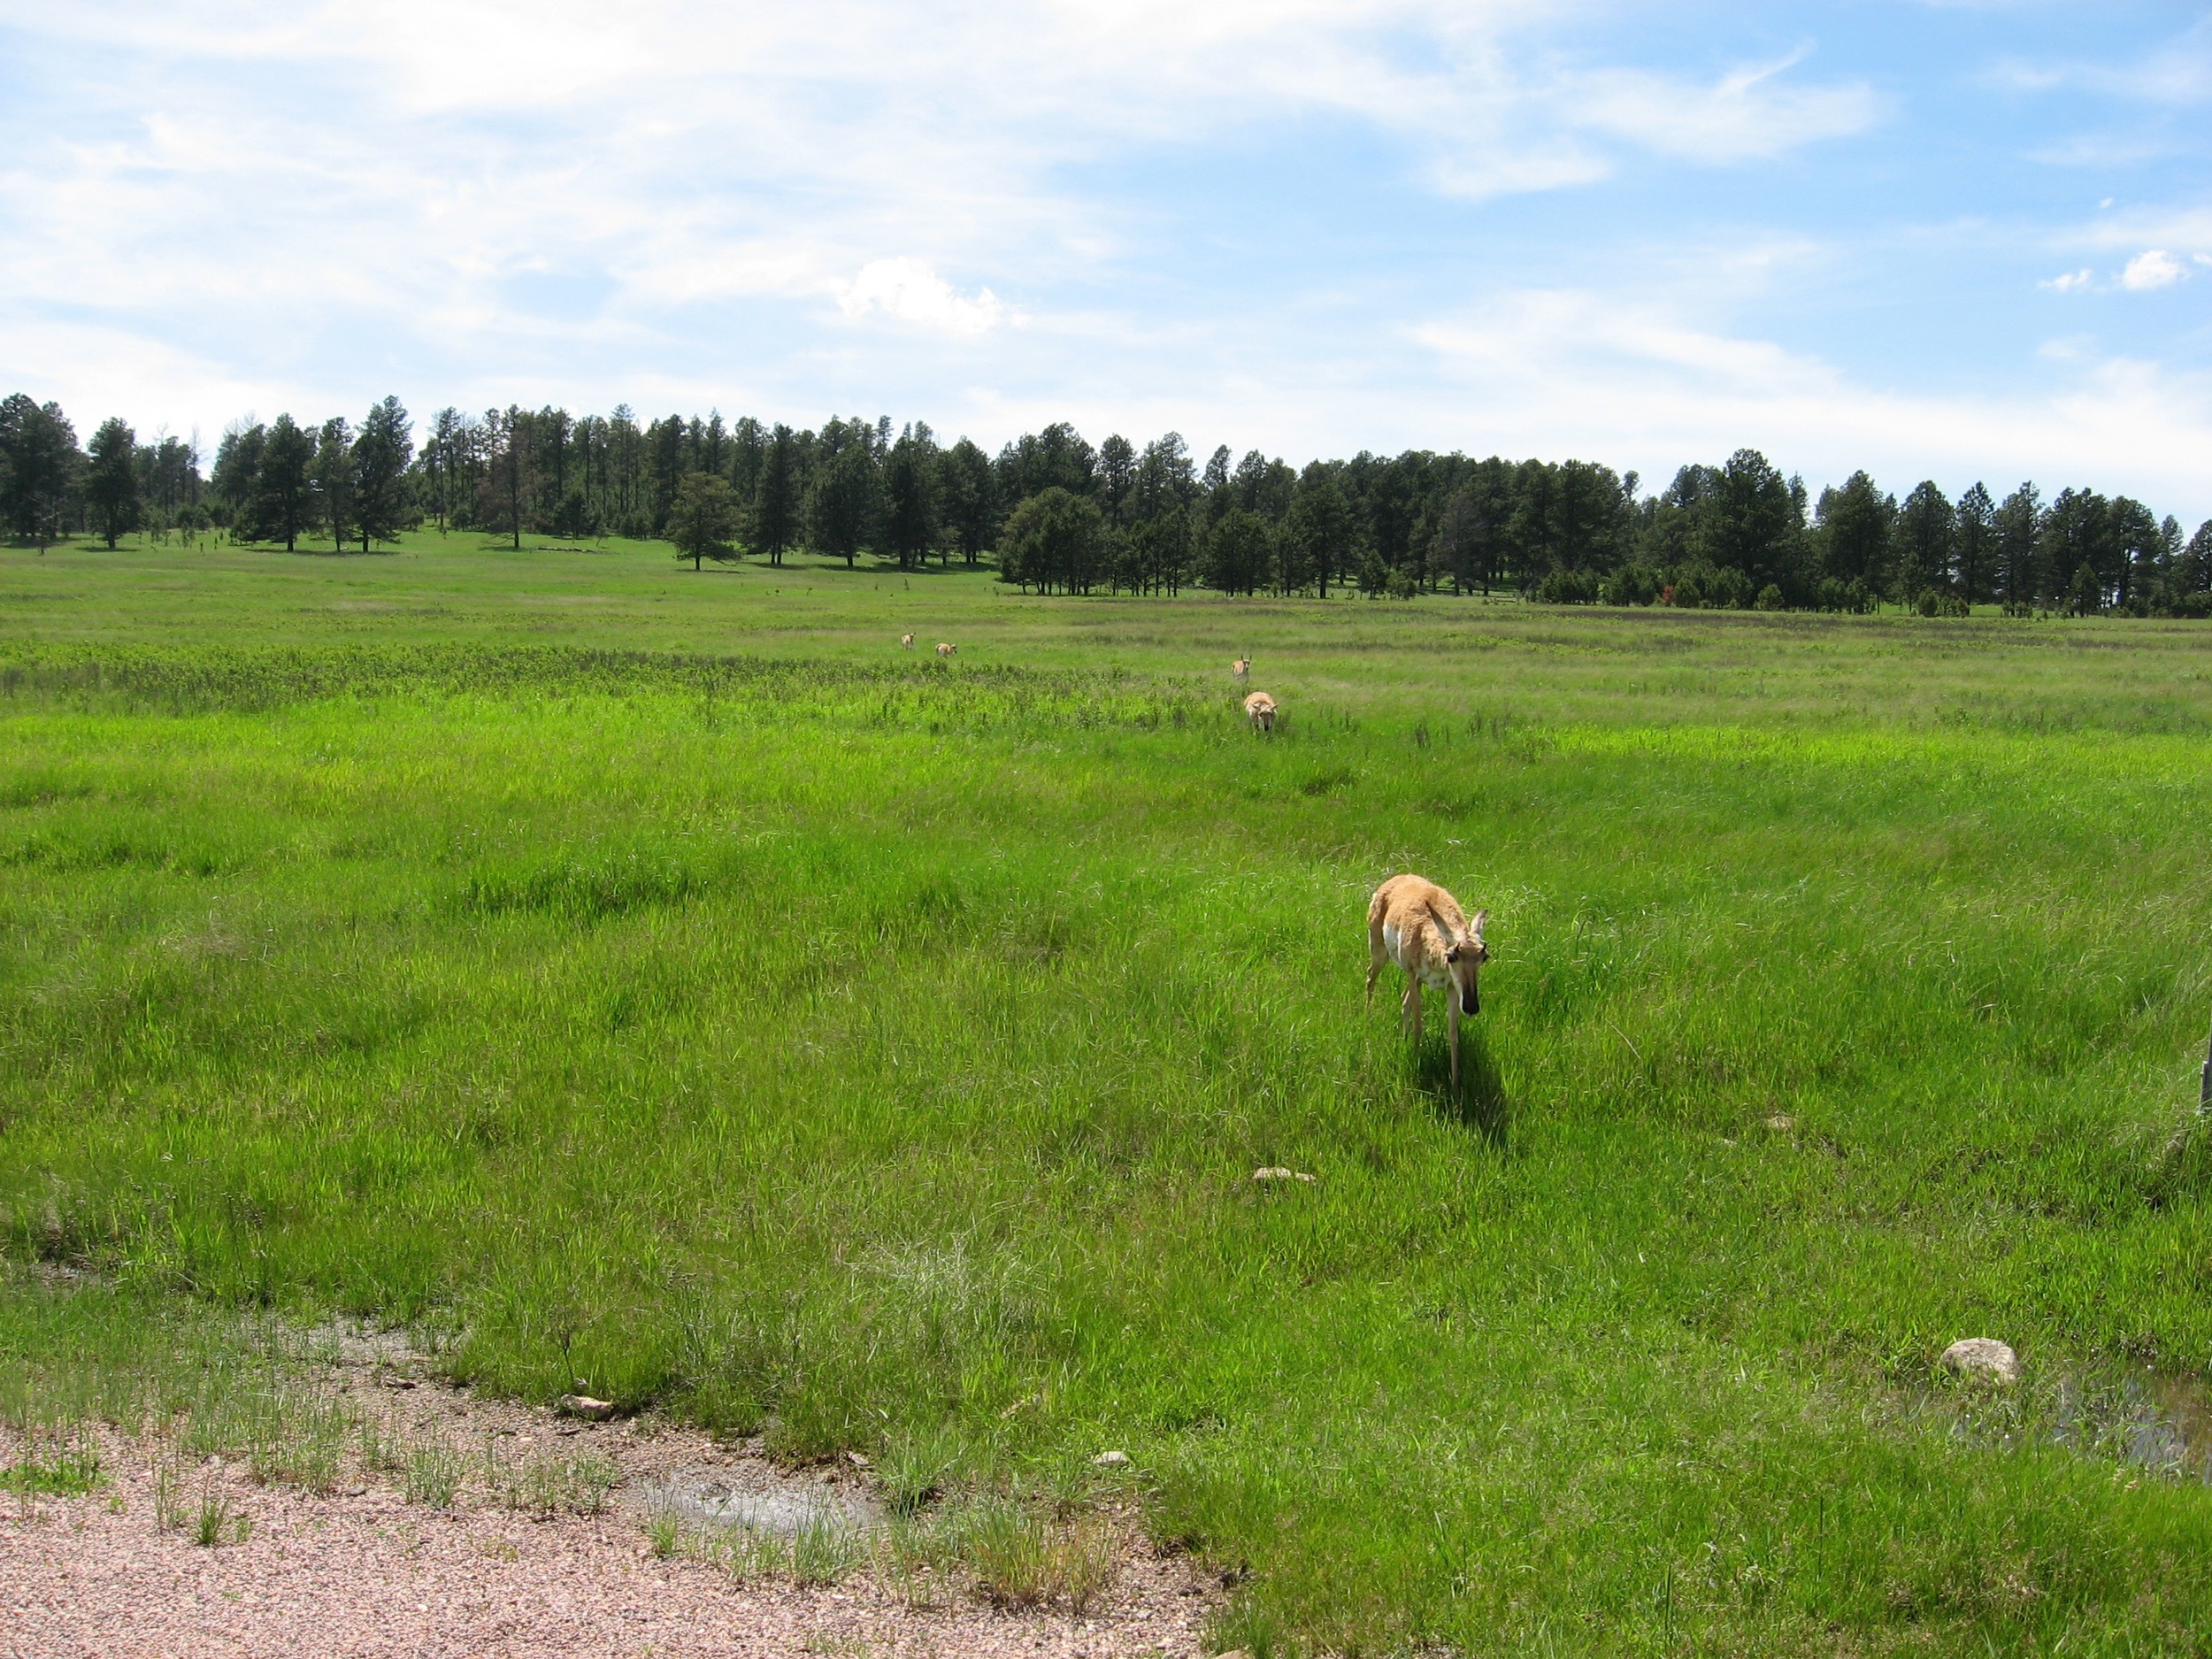 Entering Custer State Park